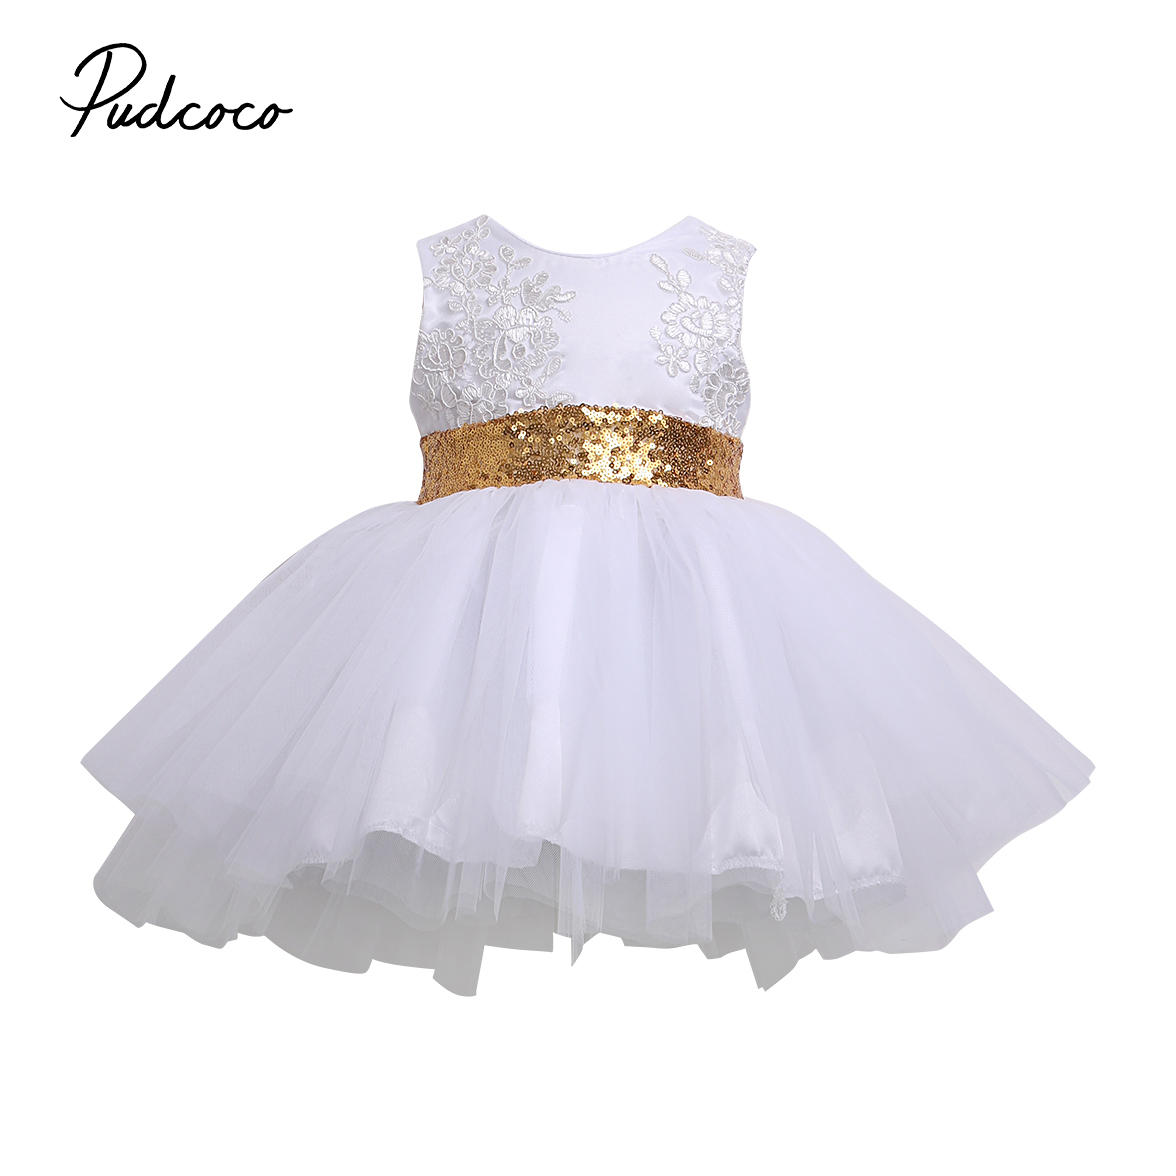 XMAS Kids Baby Girls Flower Sequins Tulle Tutu Dress Little Girl Princess Formal Big Bow Party Gown Tulle Dress 0-10T 2016 new kids baby girl princess flower tutu dress party formal lace 2 6y